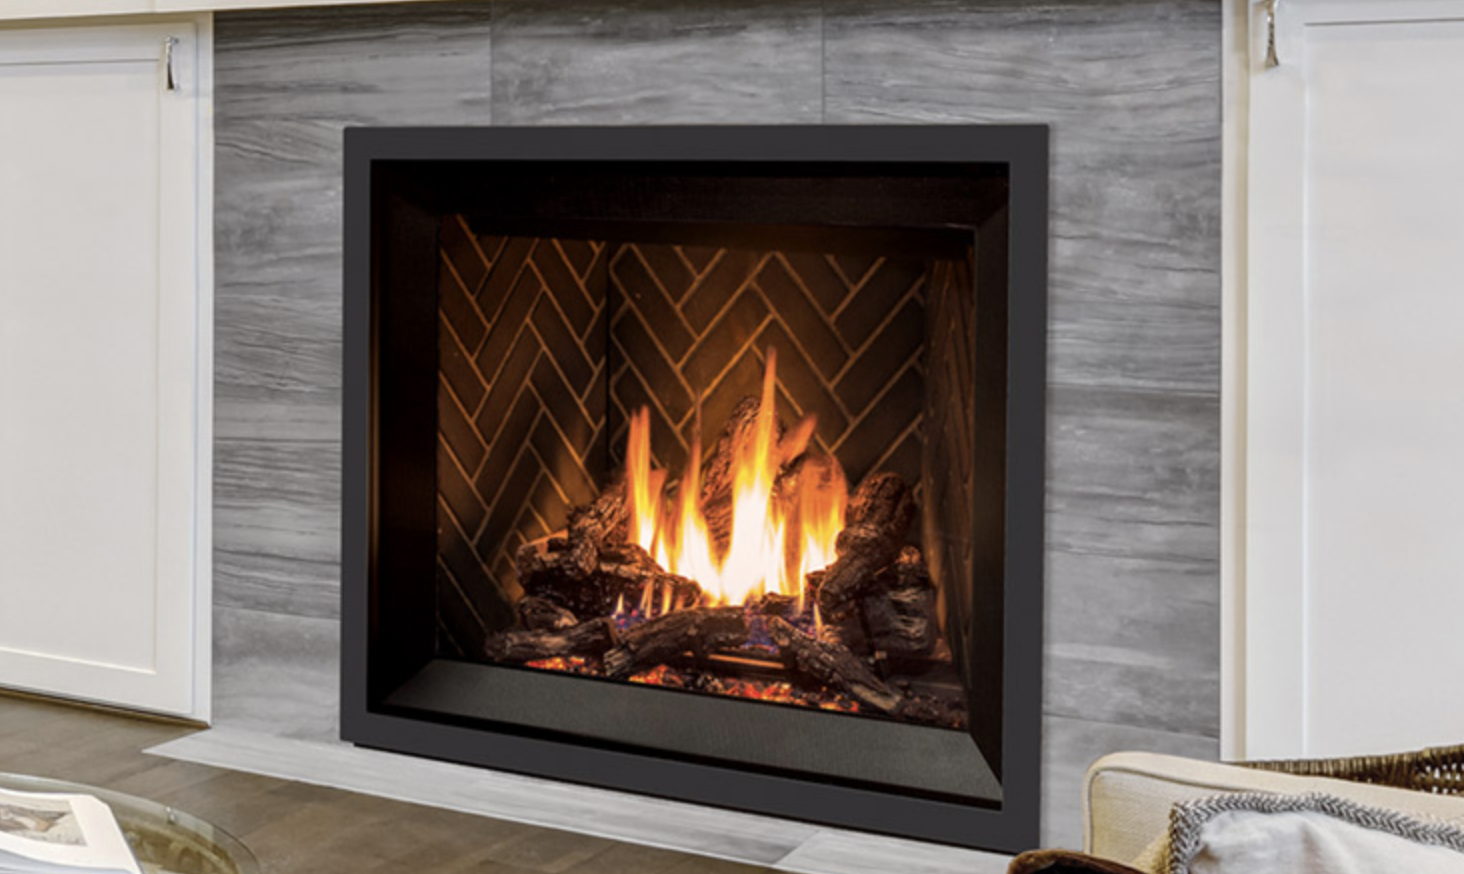 Enviro G39 Gas Natural Gas Or Propane Fireplacefriendly Fires